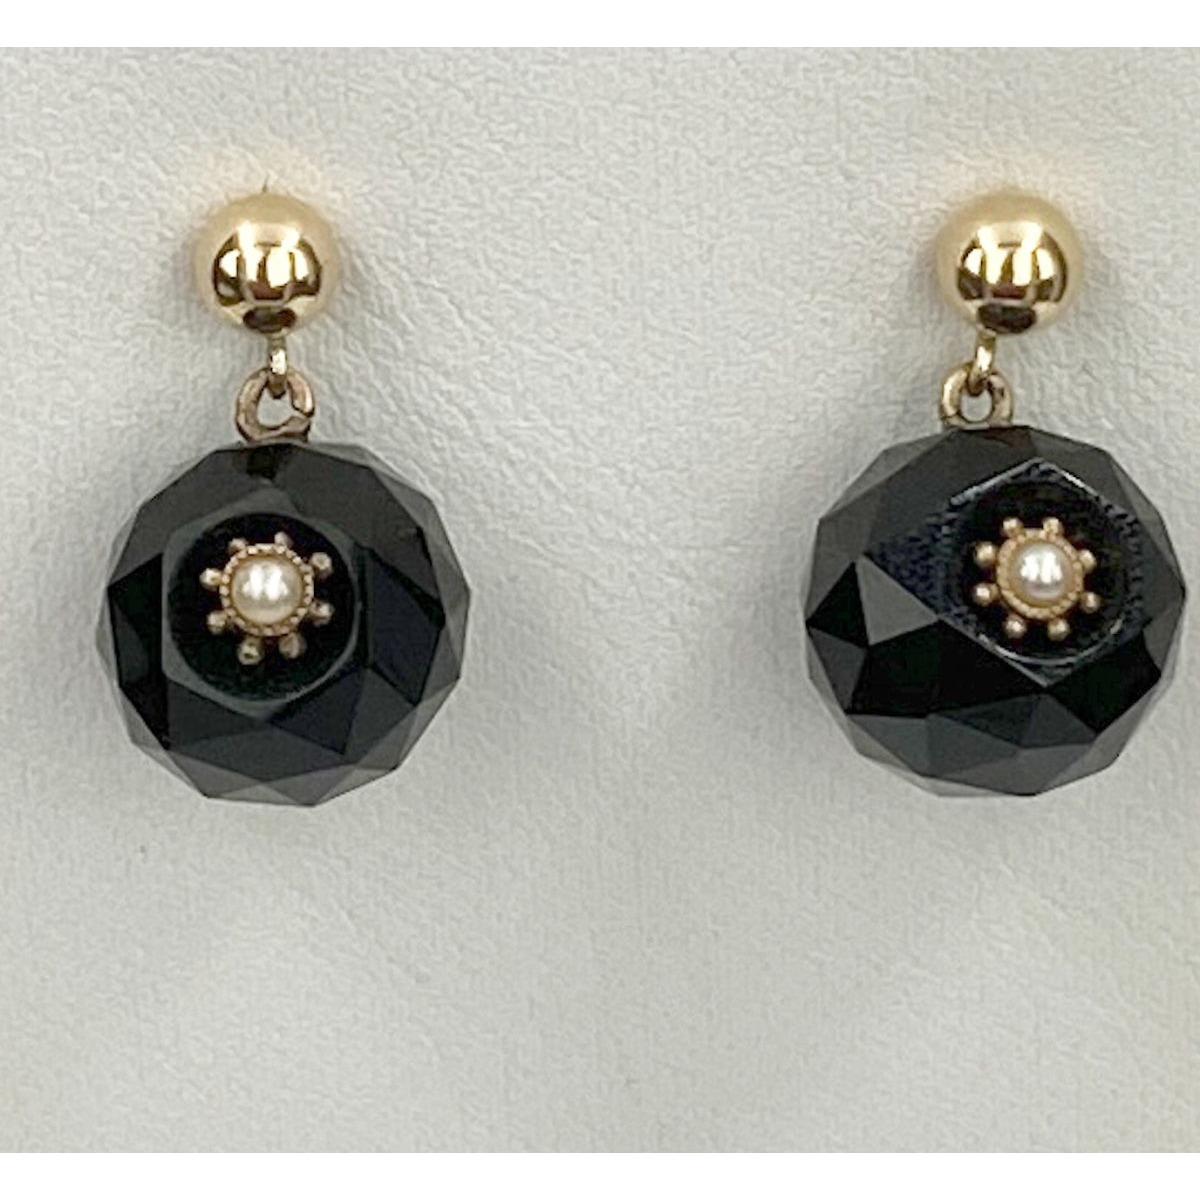 Black Jet Faceted Ball Antique Earrings with Seed Pearls and 15kt Highlights